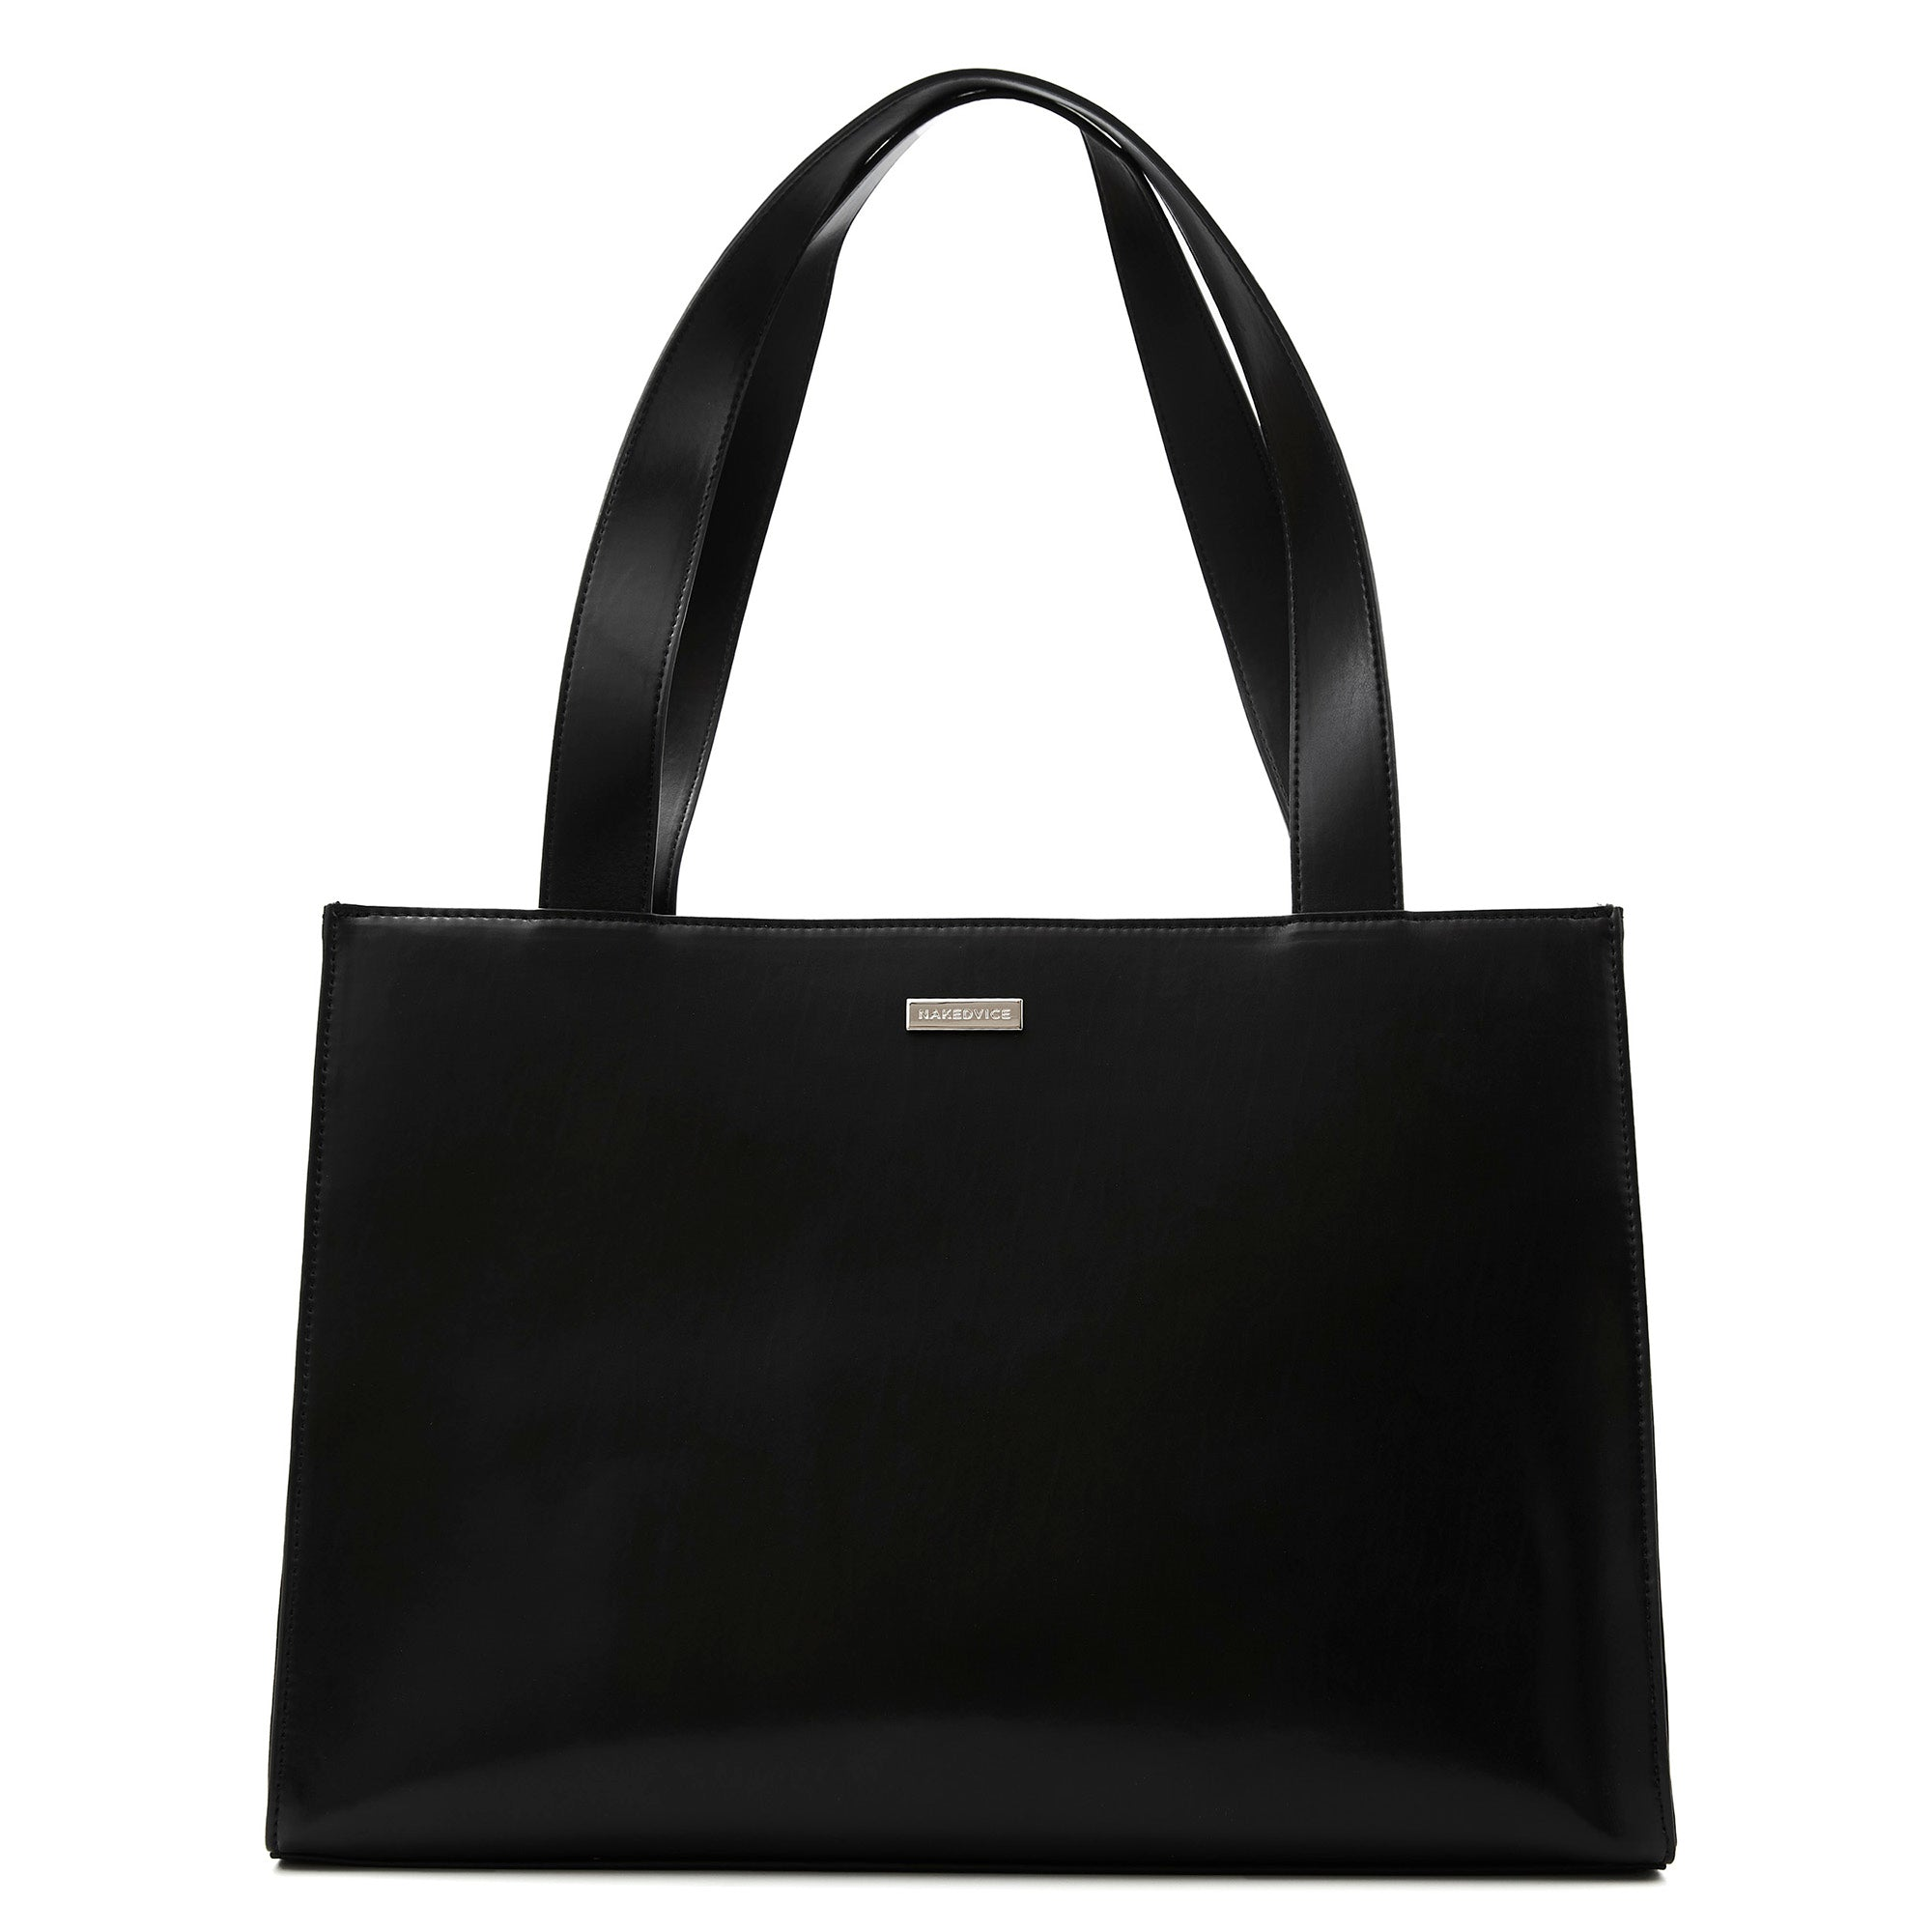 THE JEMIMA TOTE BAG